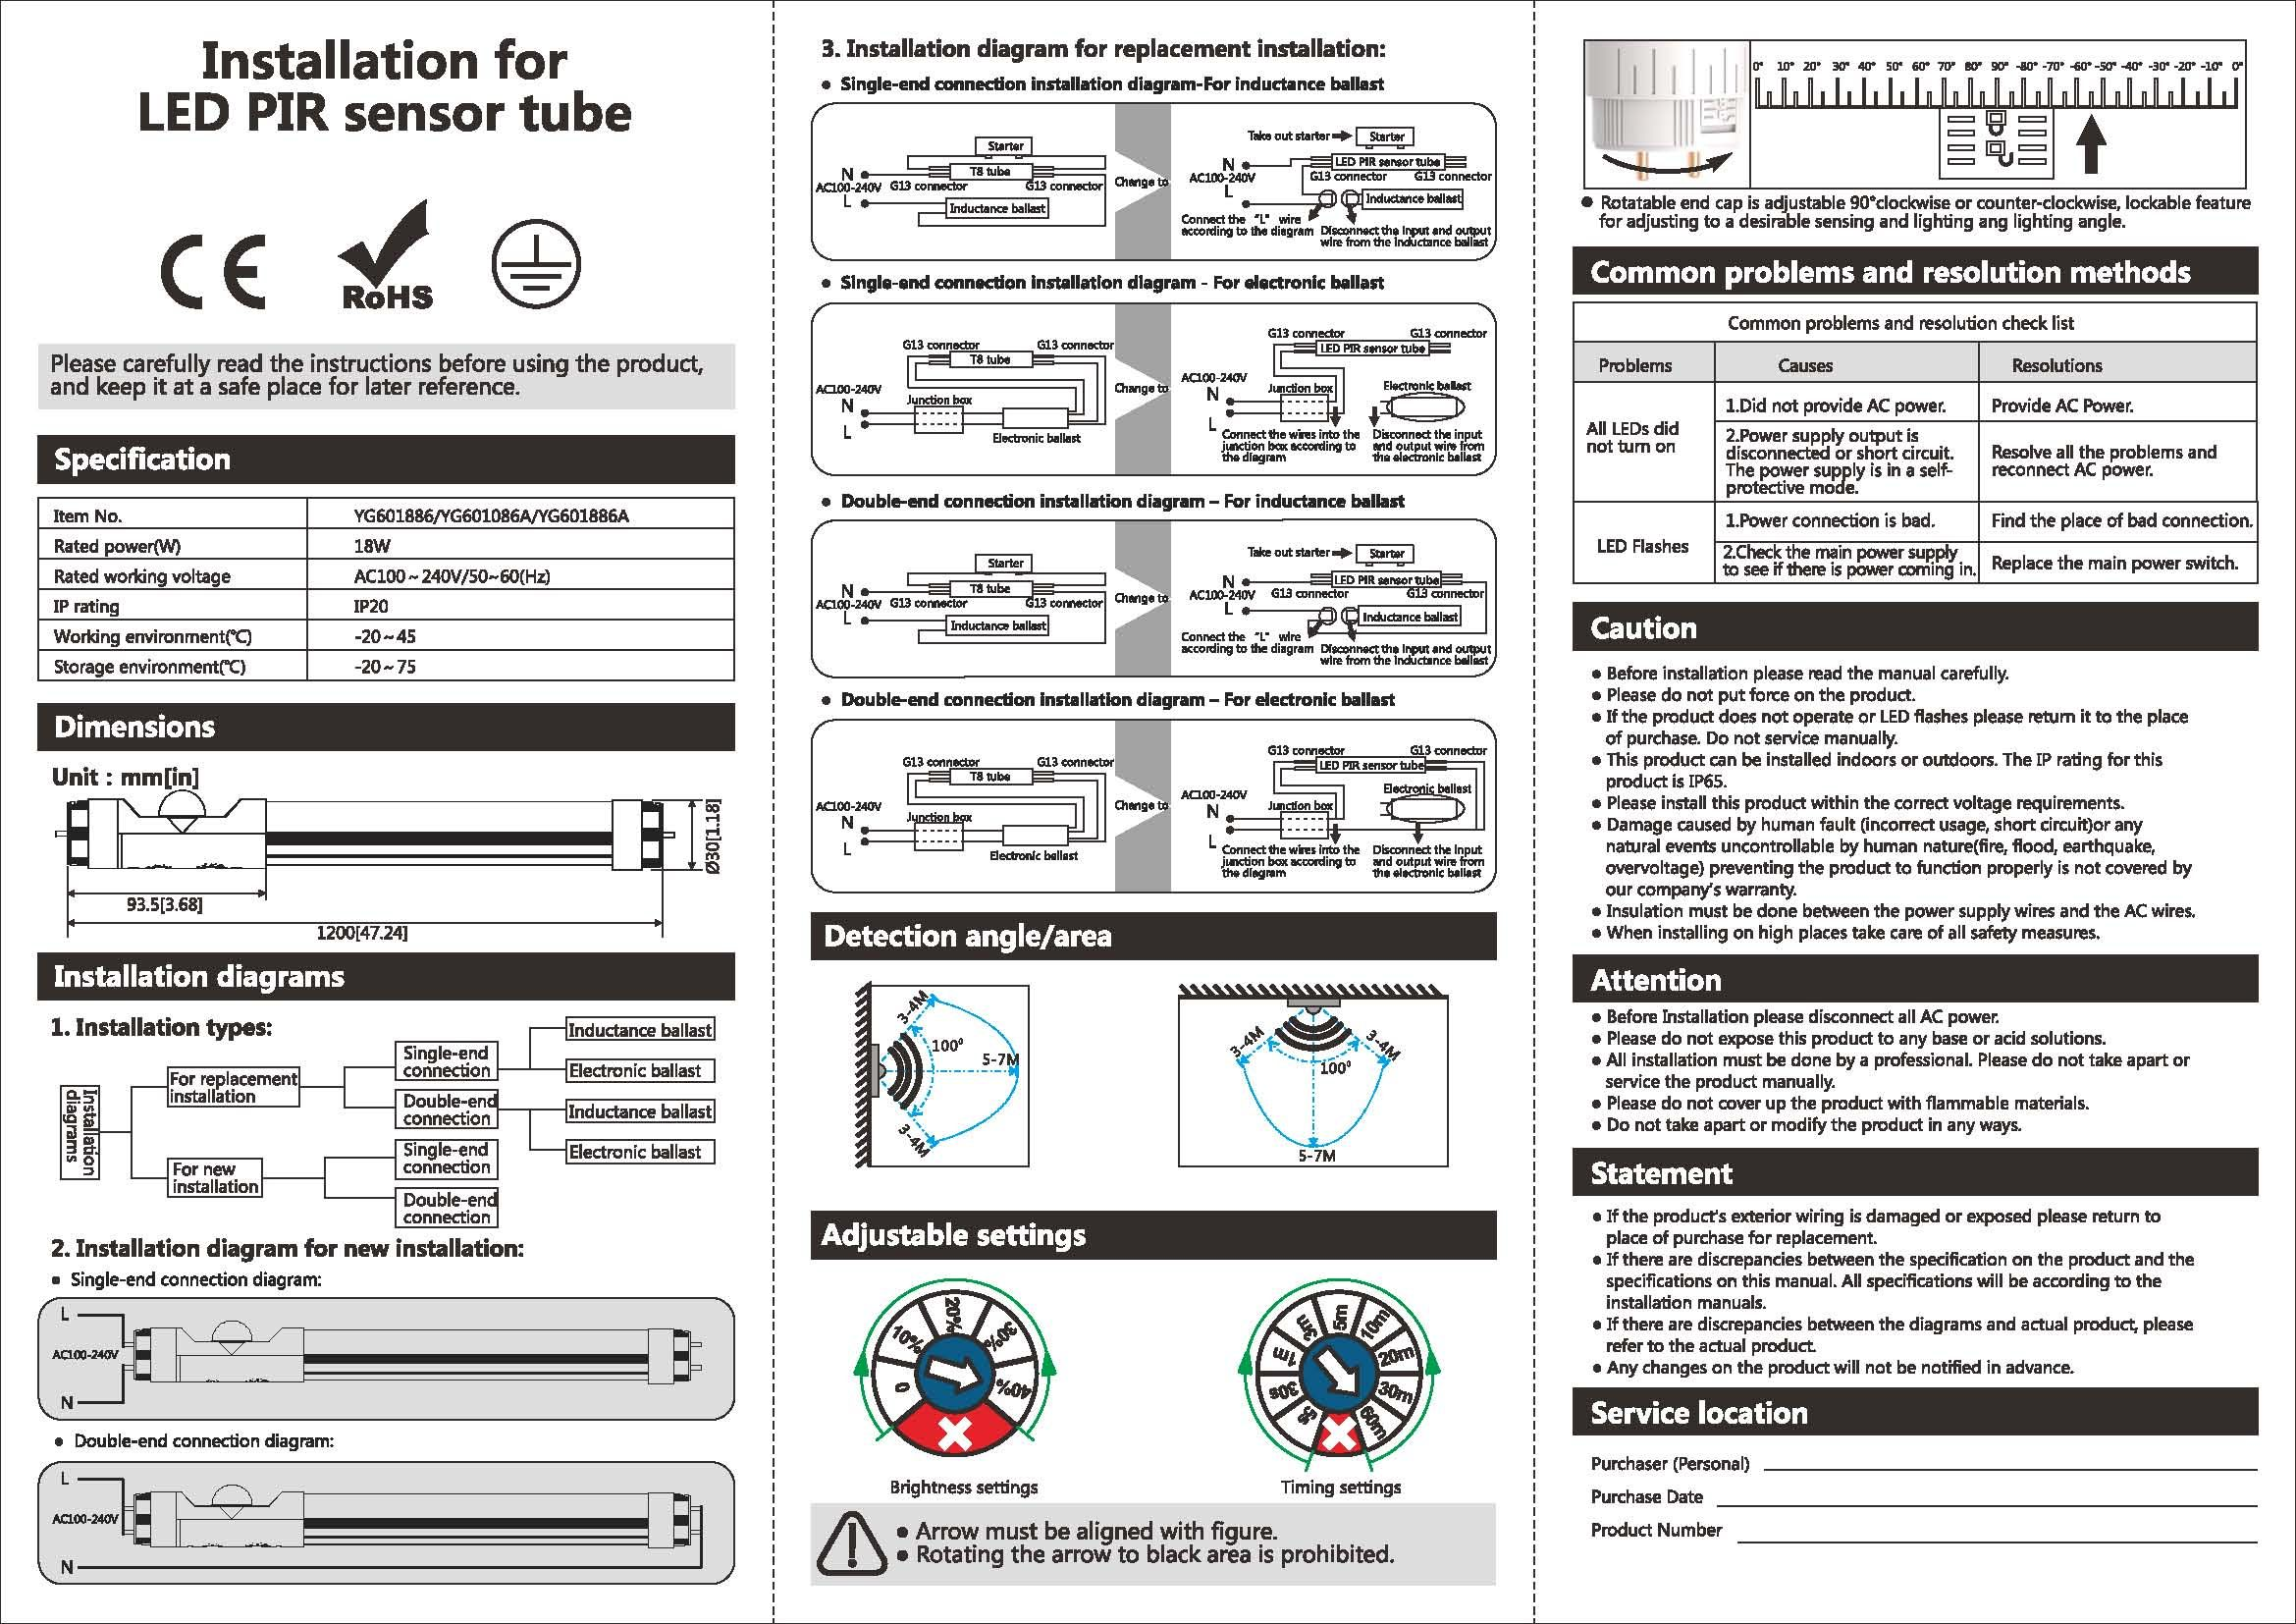 The New Tforceled Smart Pir Motion Sensor T8 Fluorescent Tube Led Circuit Diagram Also Wiring Instruction Manual For